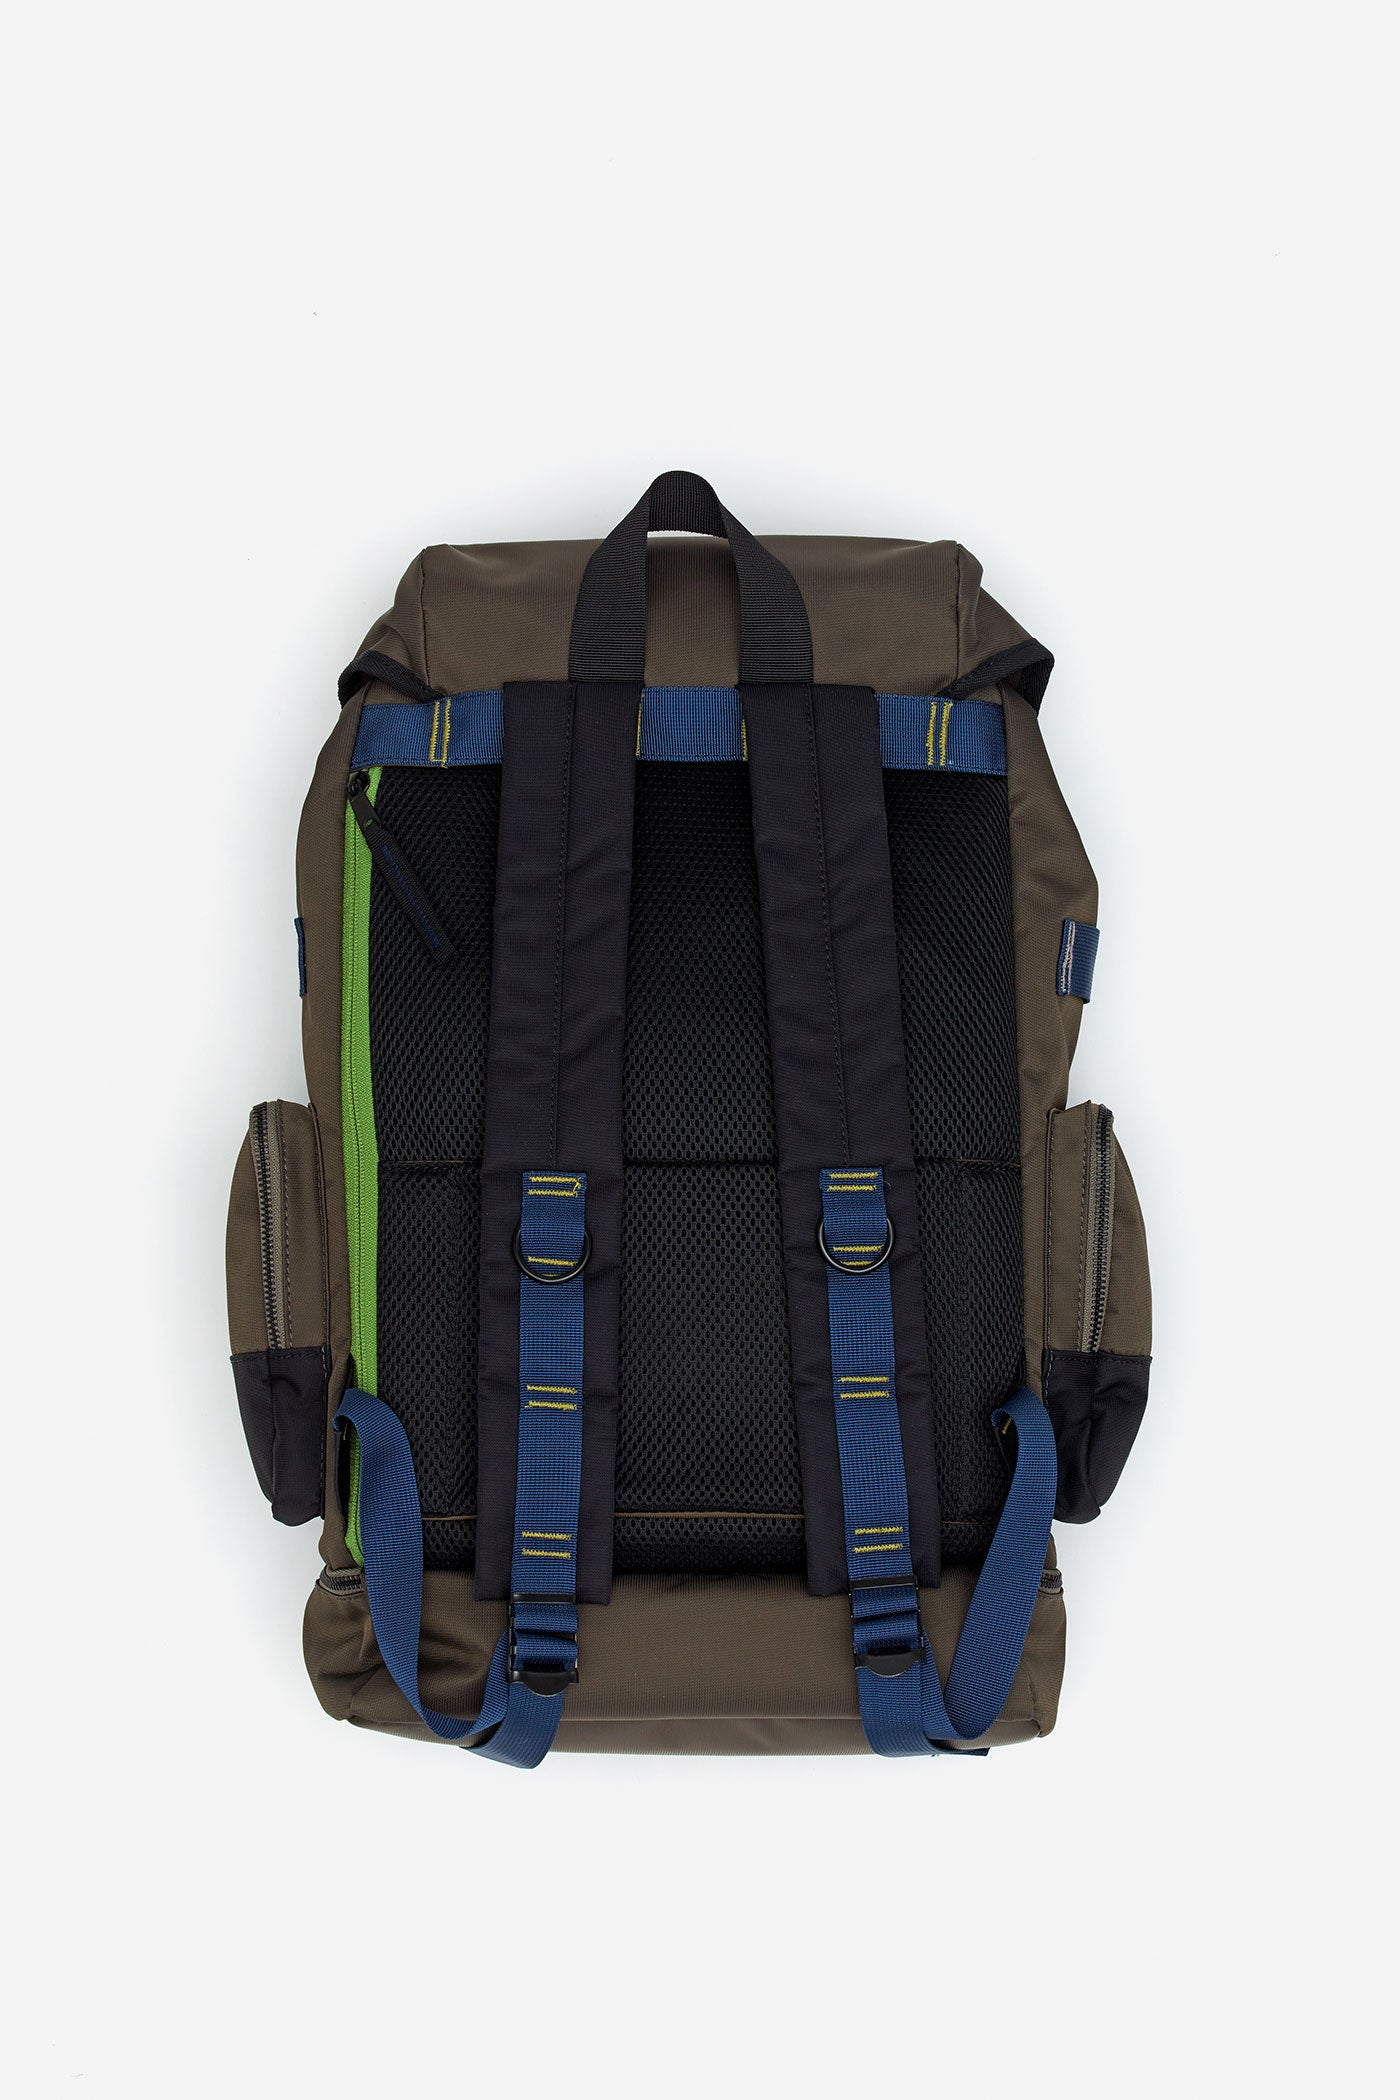 Backpack wood